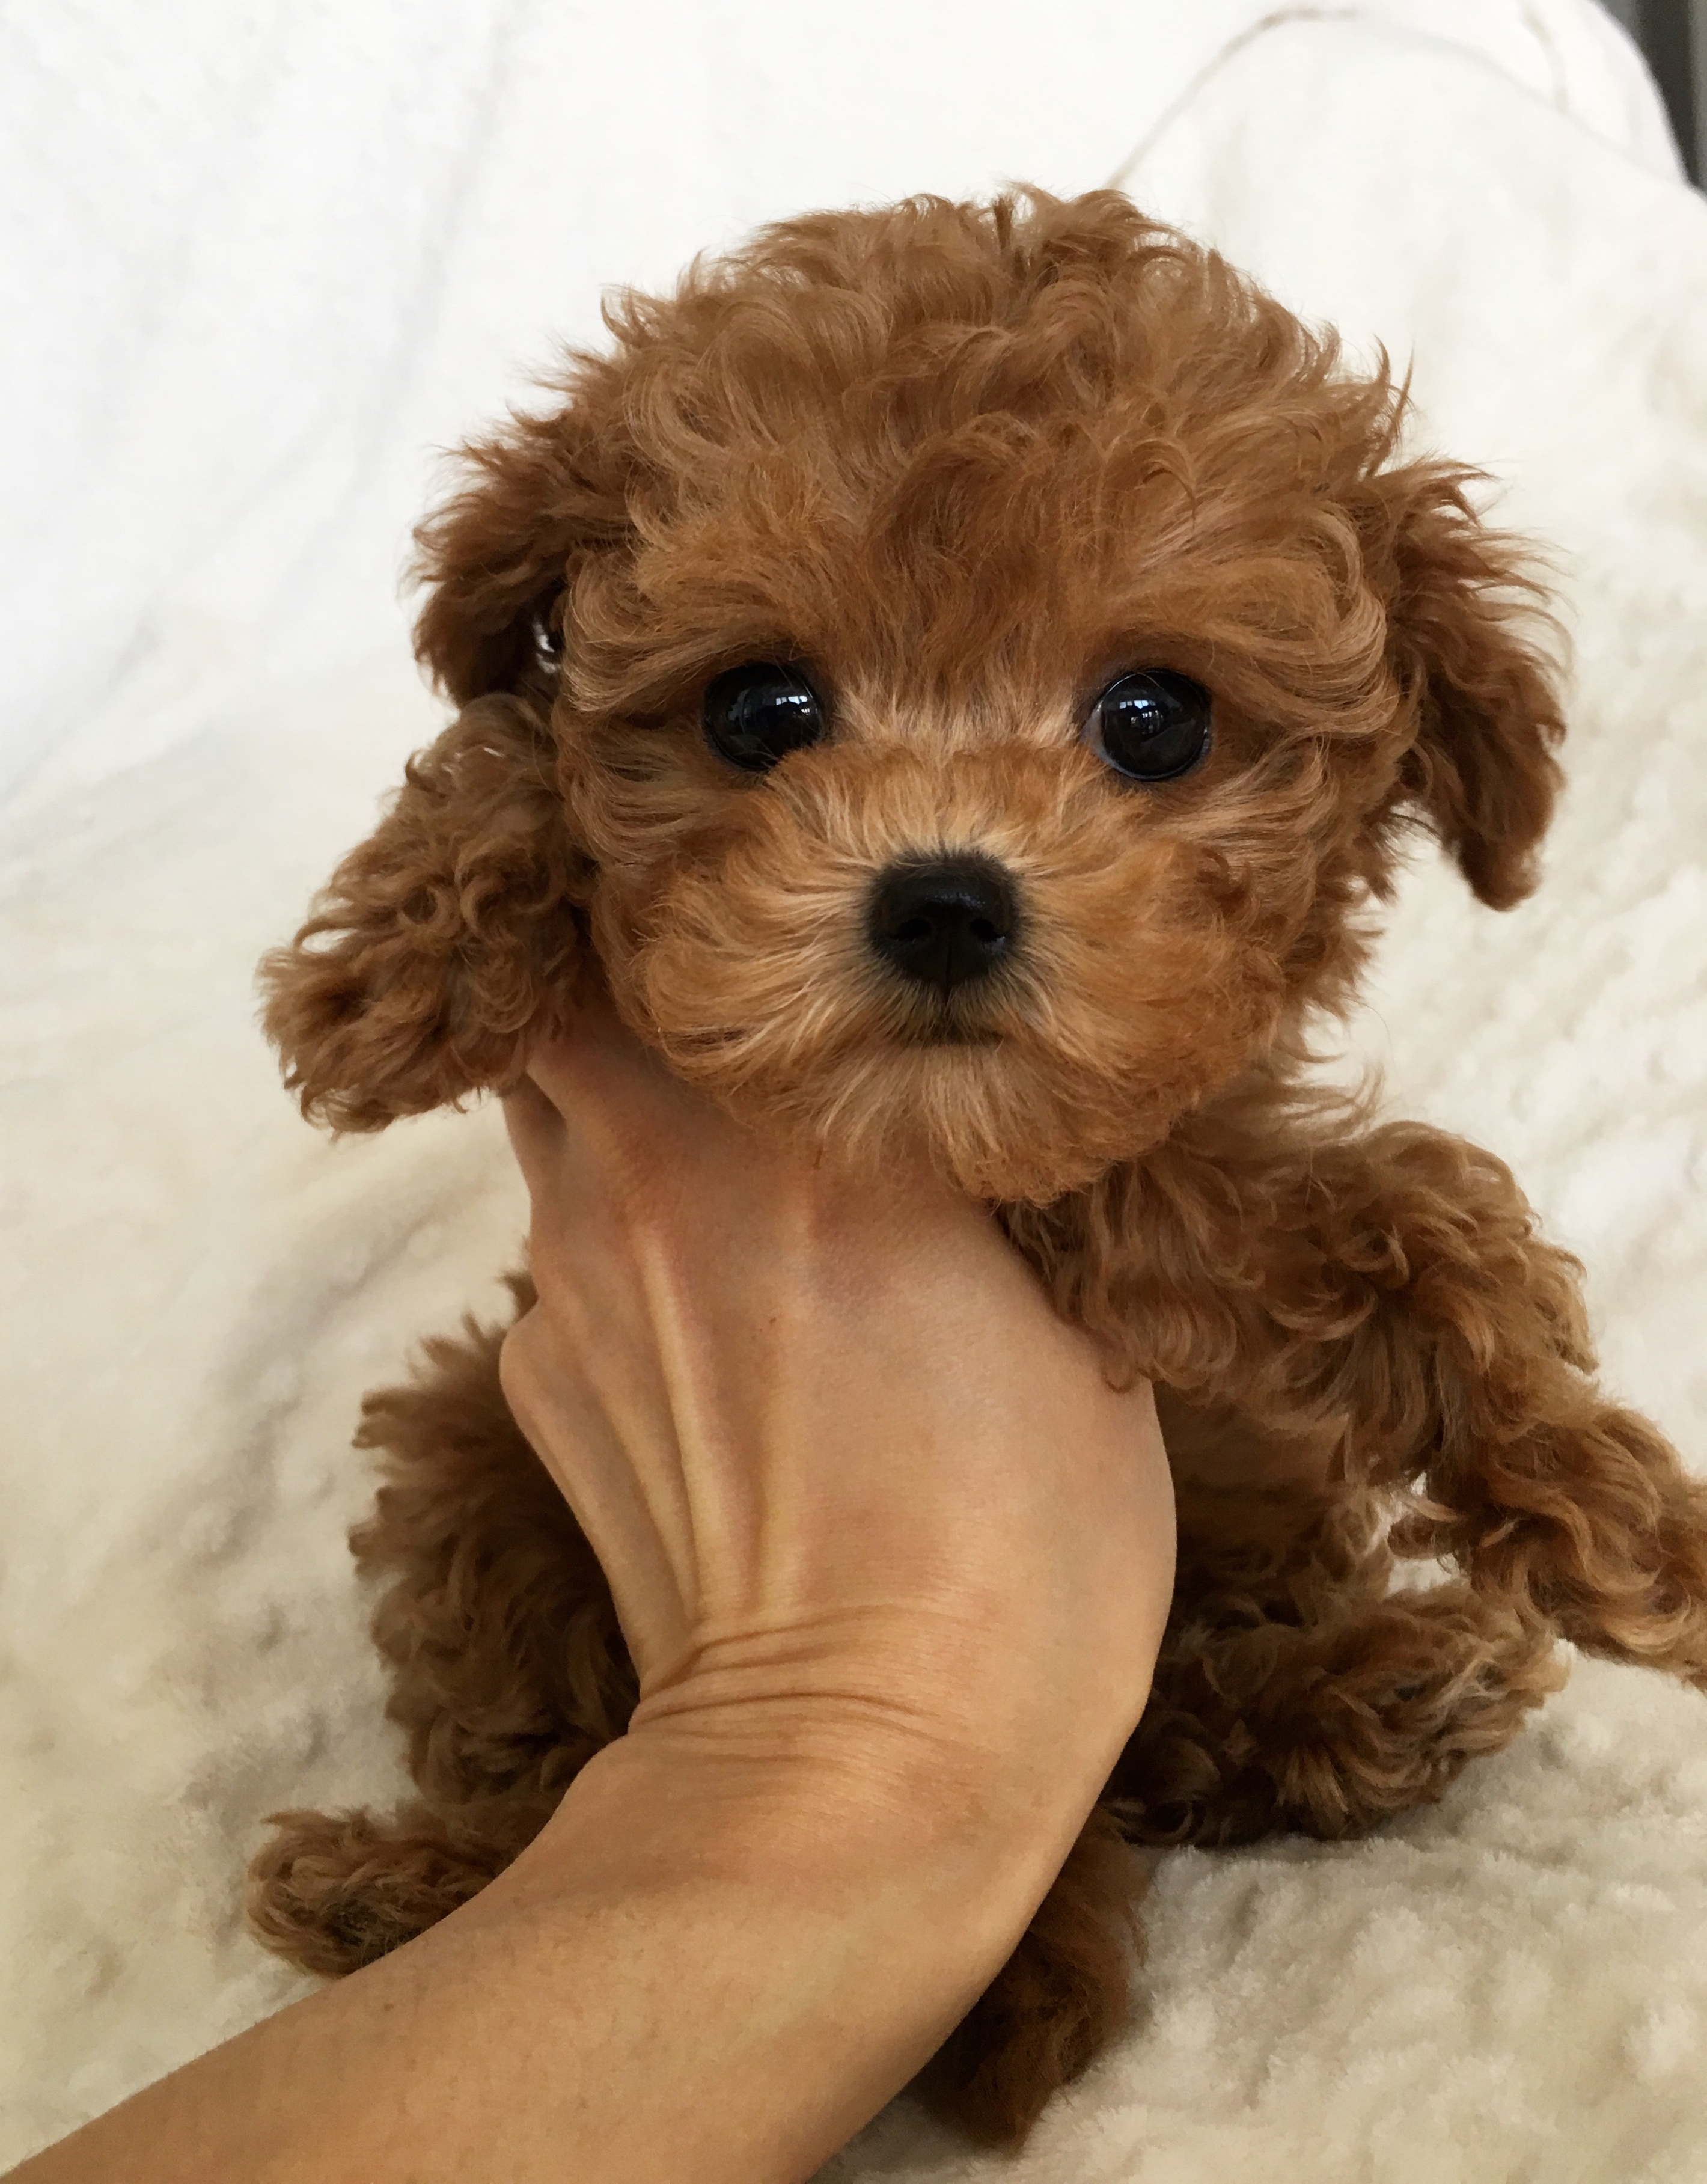 Maltipoo Puppies Names Posted By